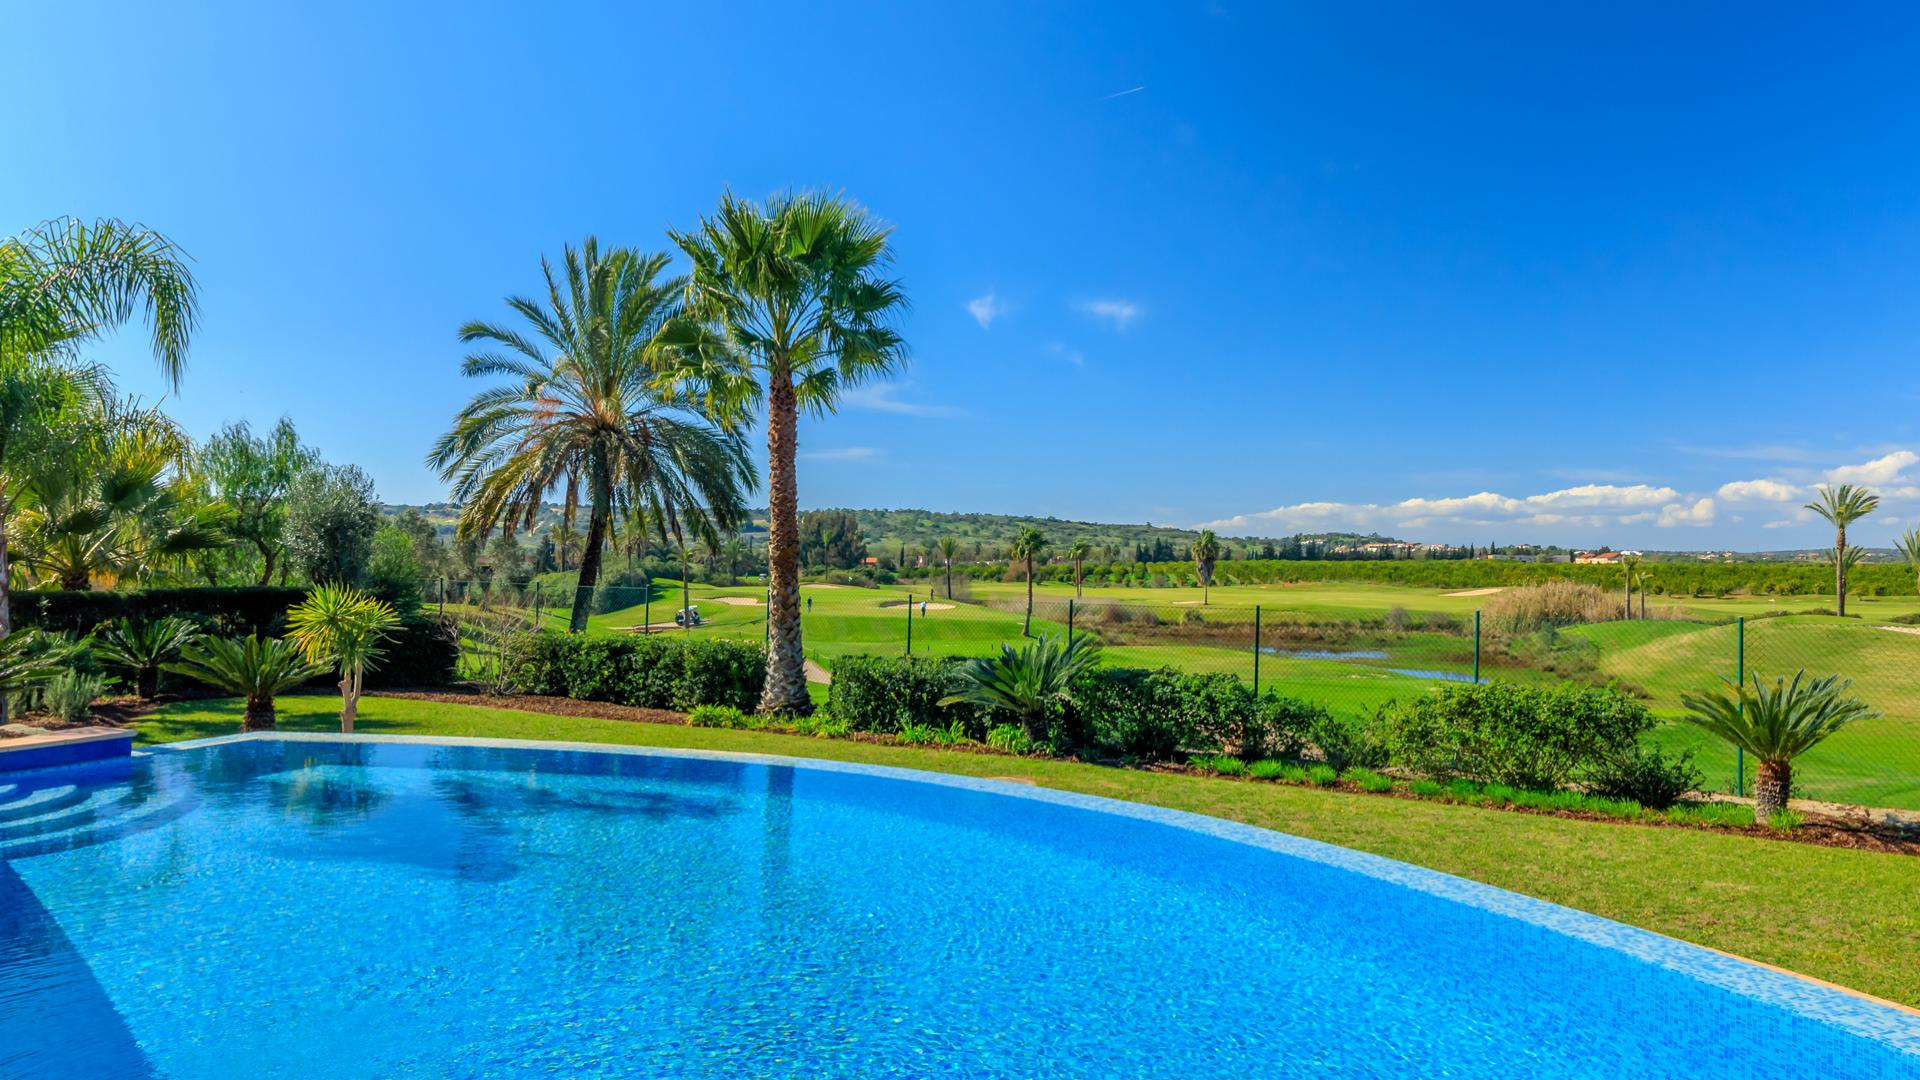 Property for sale in the Algarve: the safest choice!